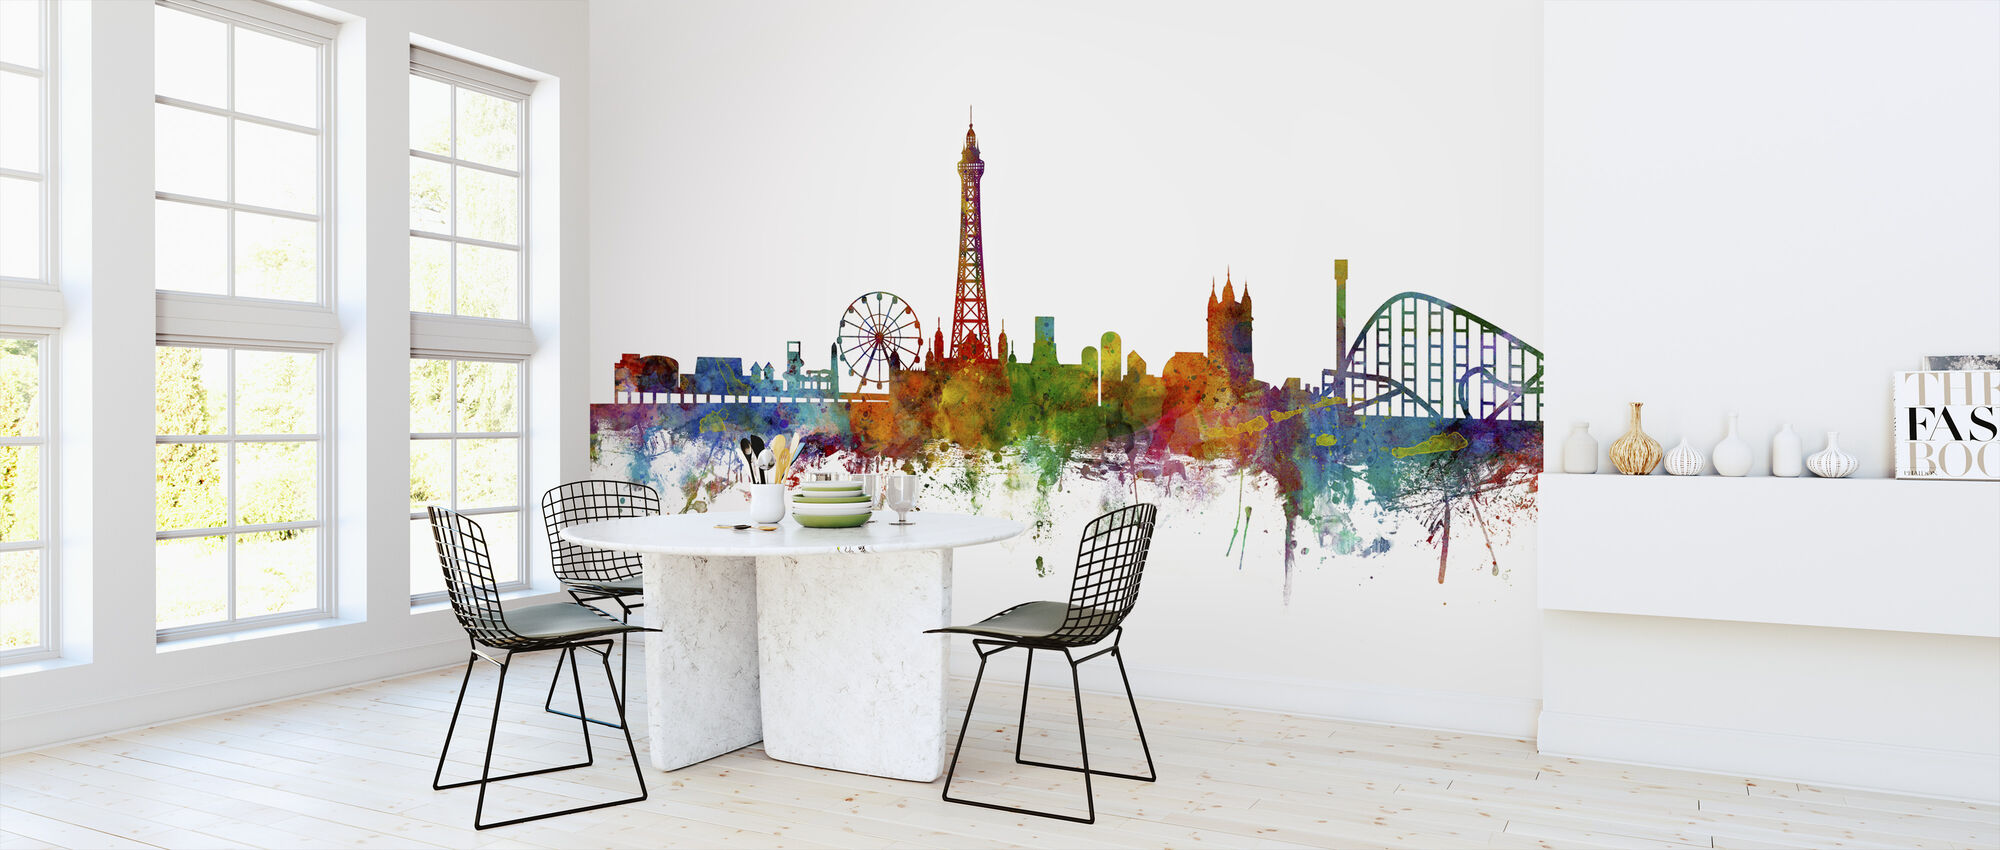 Blackpool England Skyline - Wallpaper - Kitchen